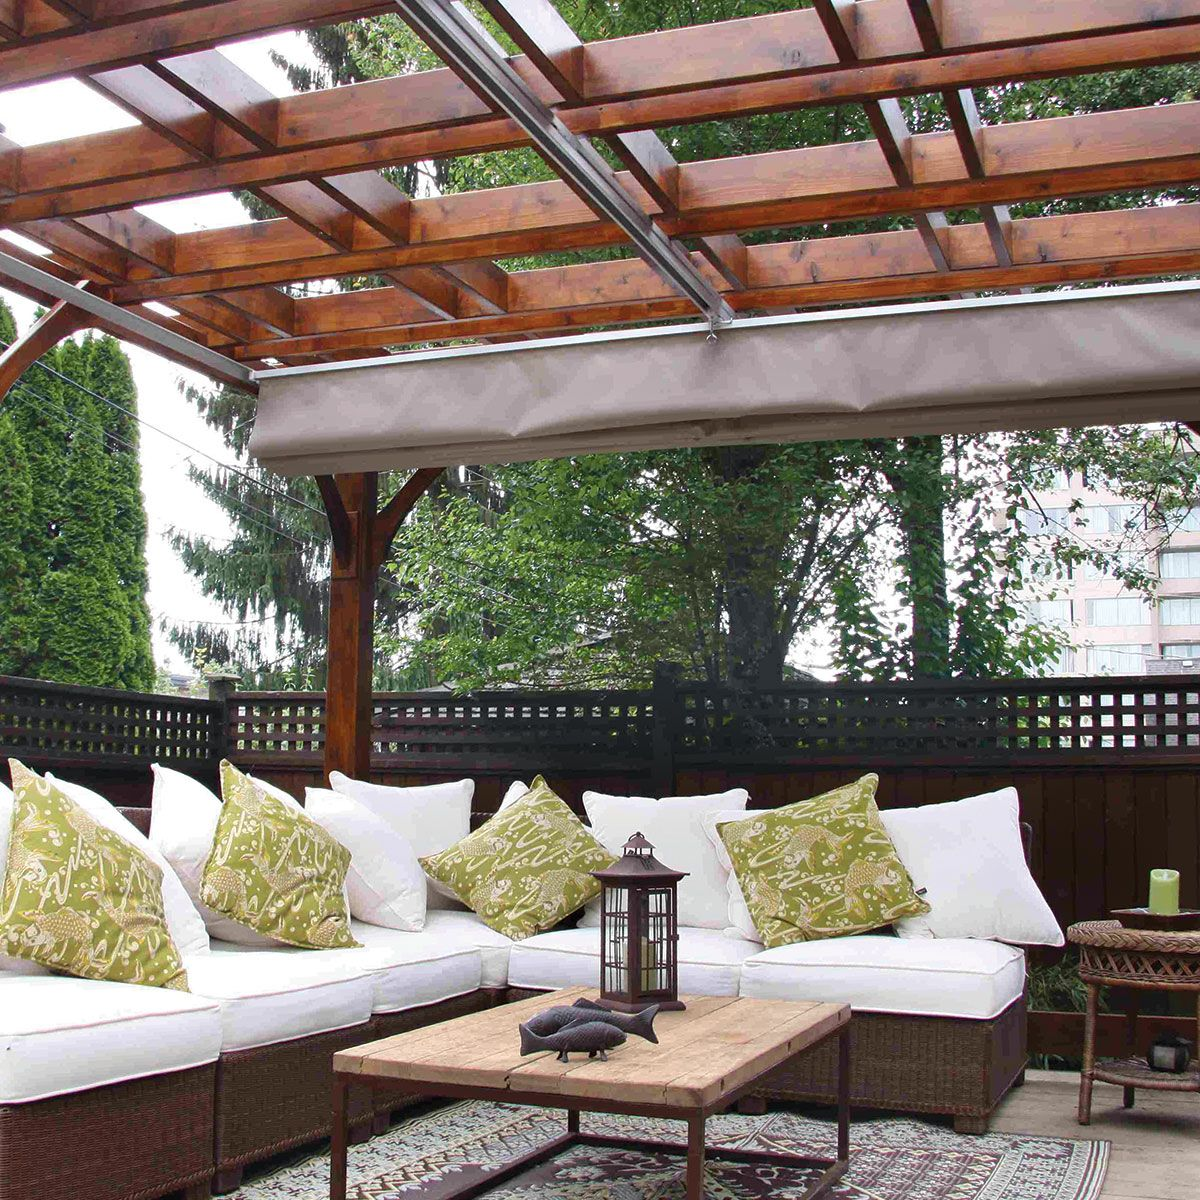 Outdoor Pergola With Canopy 12X16|Cedar|Storage Solutions|Thos. Baker : canopy property solutions - memphite.com